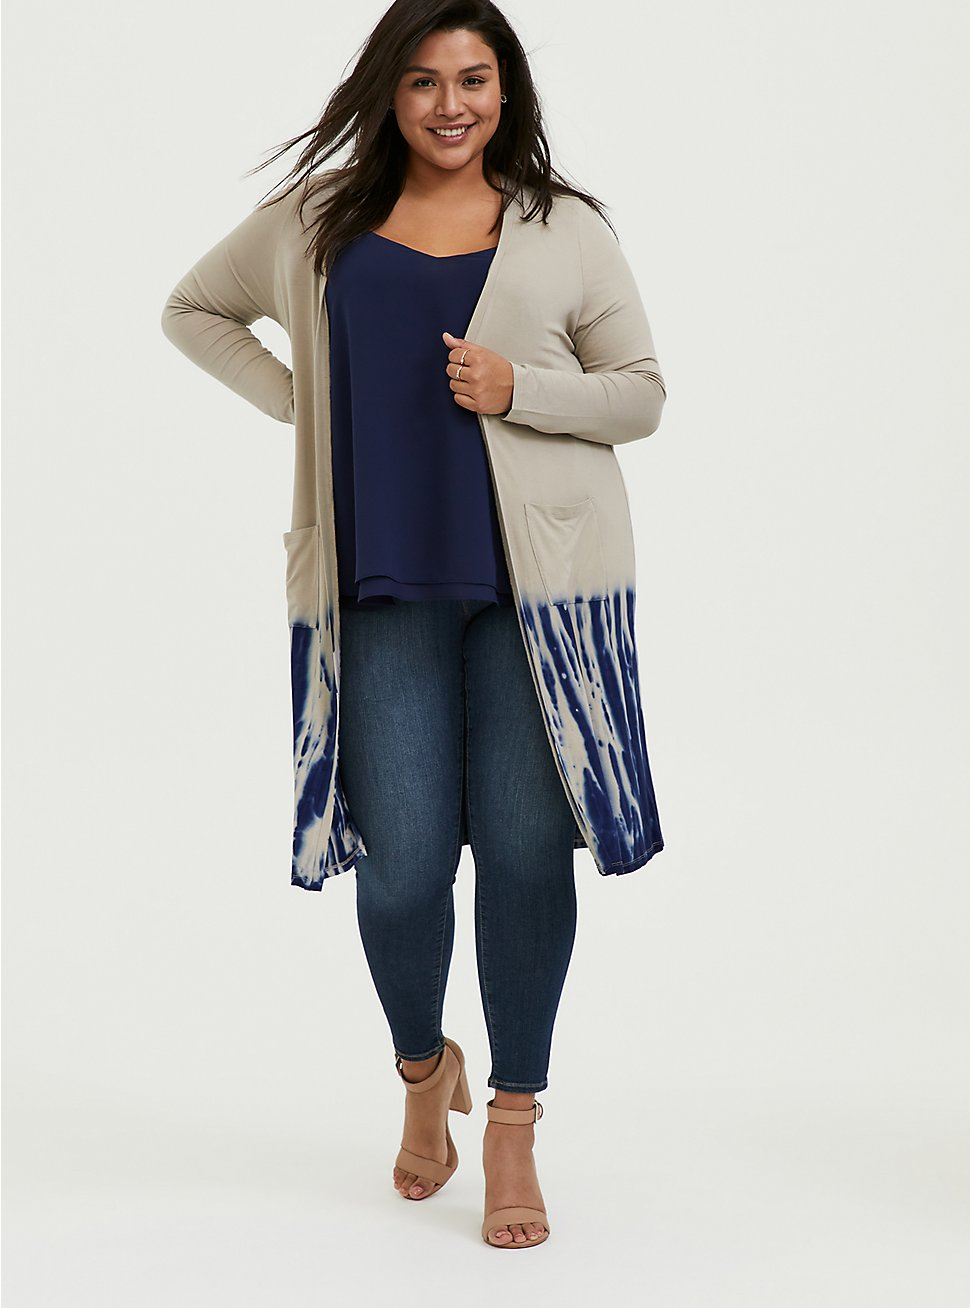 Plus Size Super Soft Taupe & Navy Tie-Dye Dipped Longline Cardigan, ATMOSPHERE, hi-res